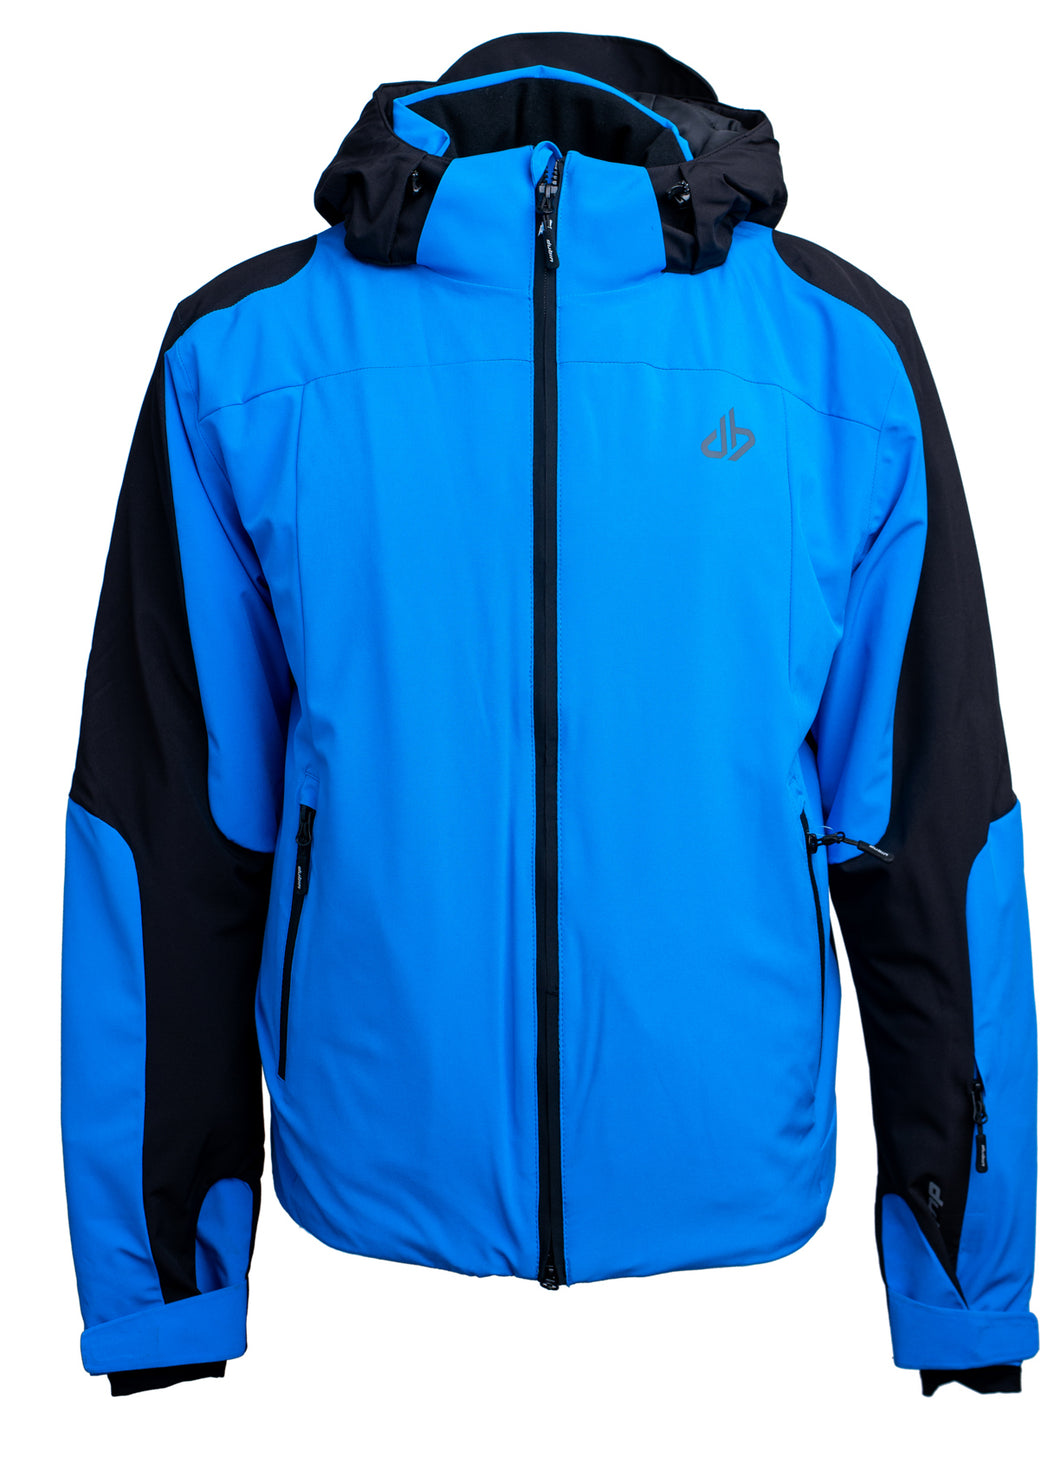 GIACCA SCI ZERMATT 10K 3M THINSULATE - ROYAL/BLACK